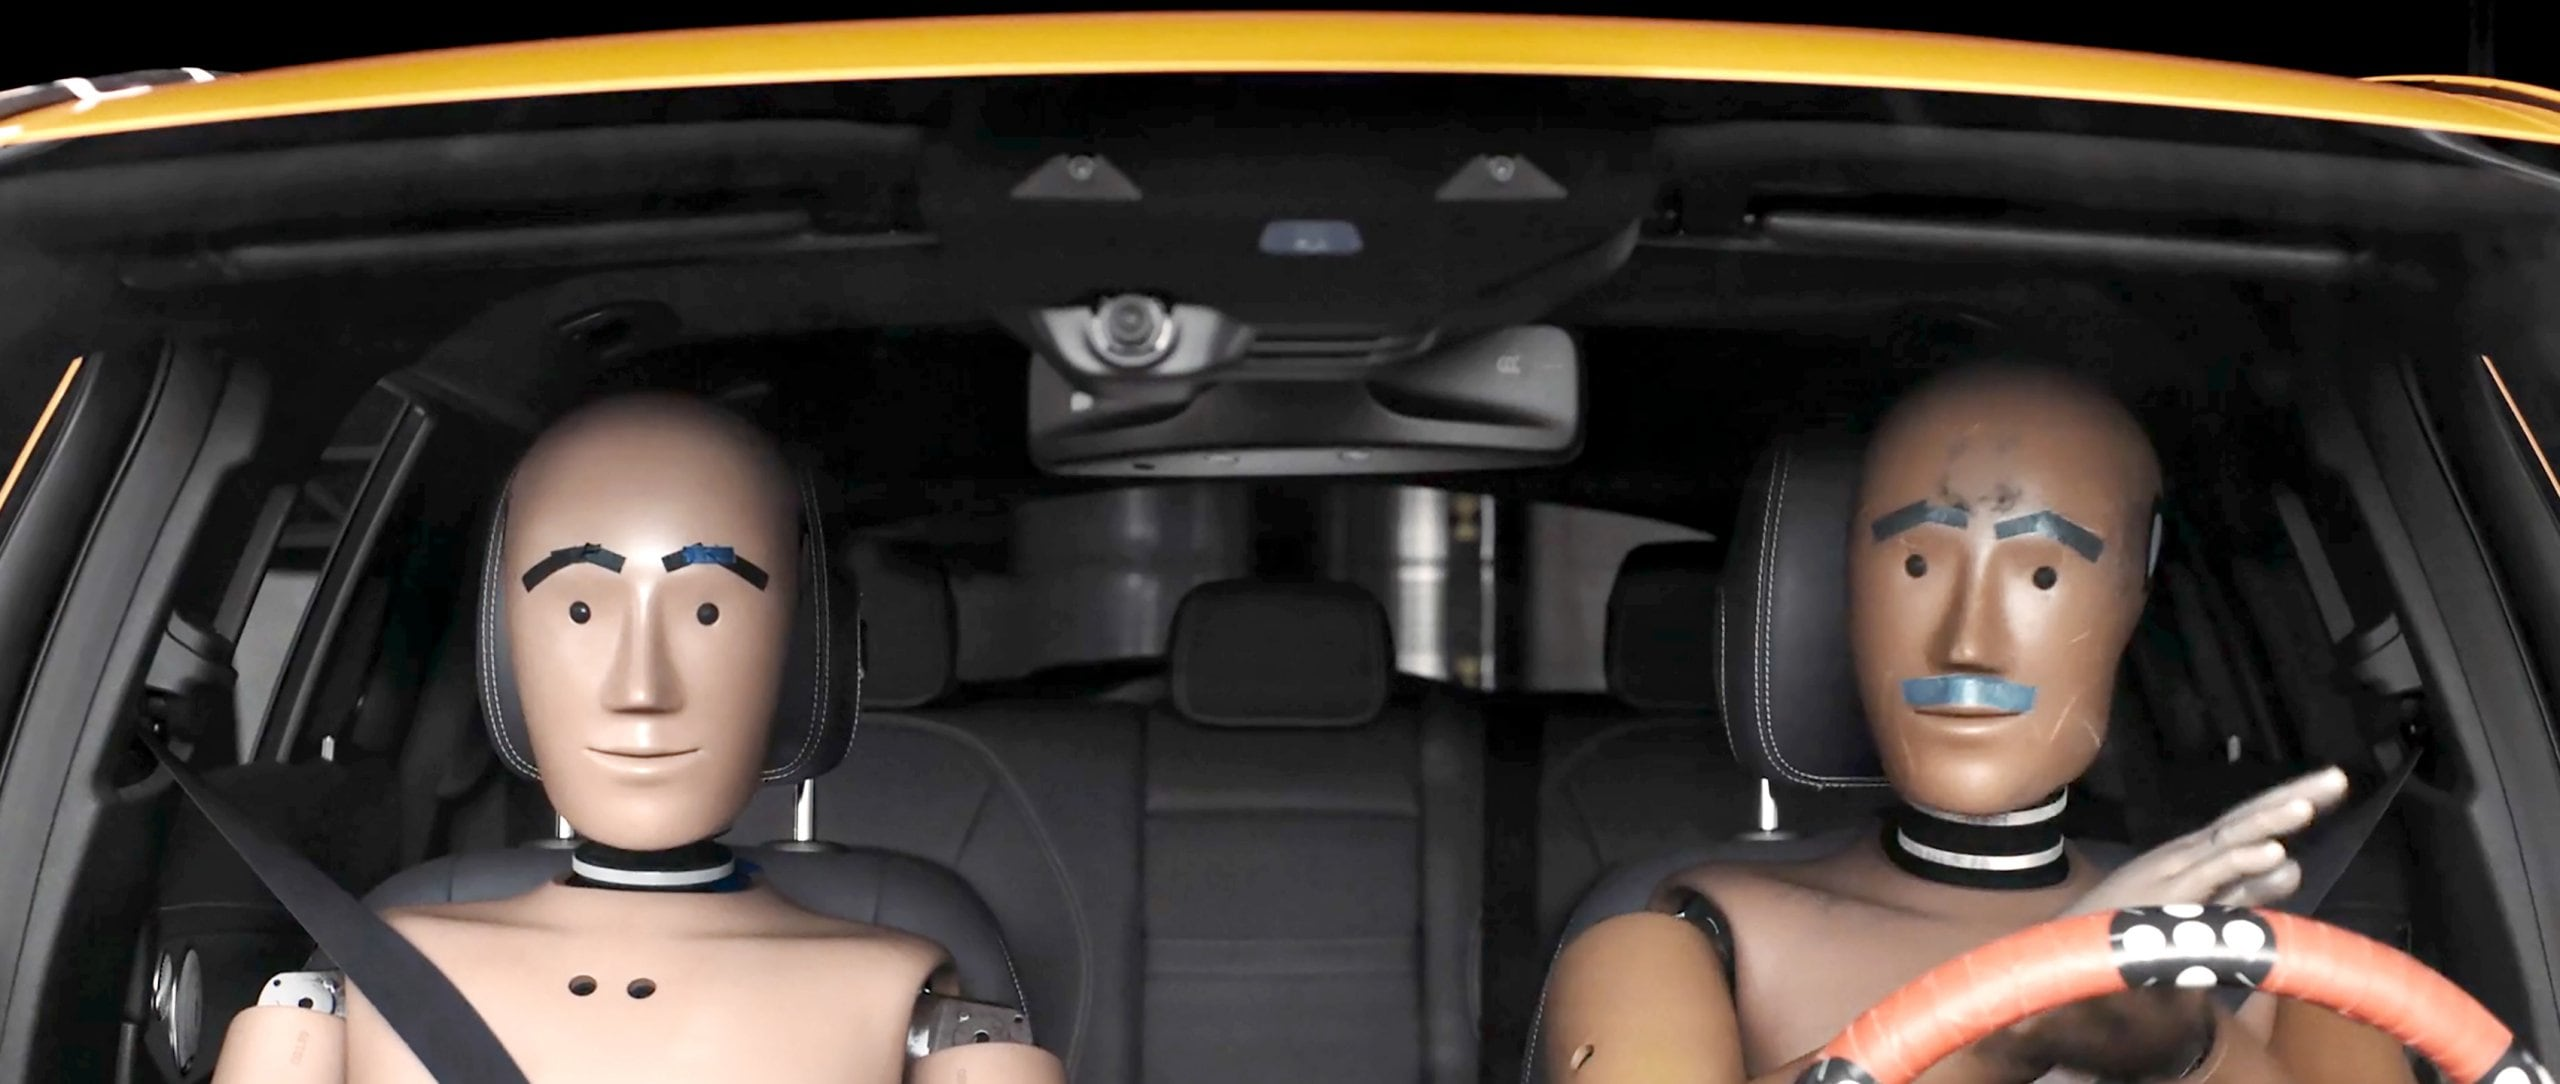 Two test dummies sit in a vehicle and look into the camera.